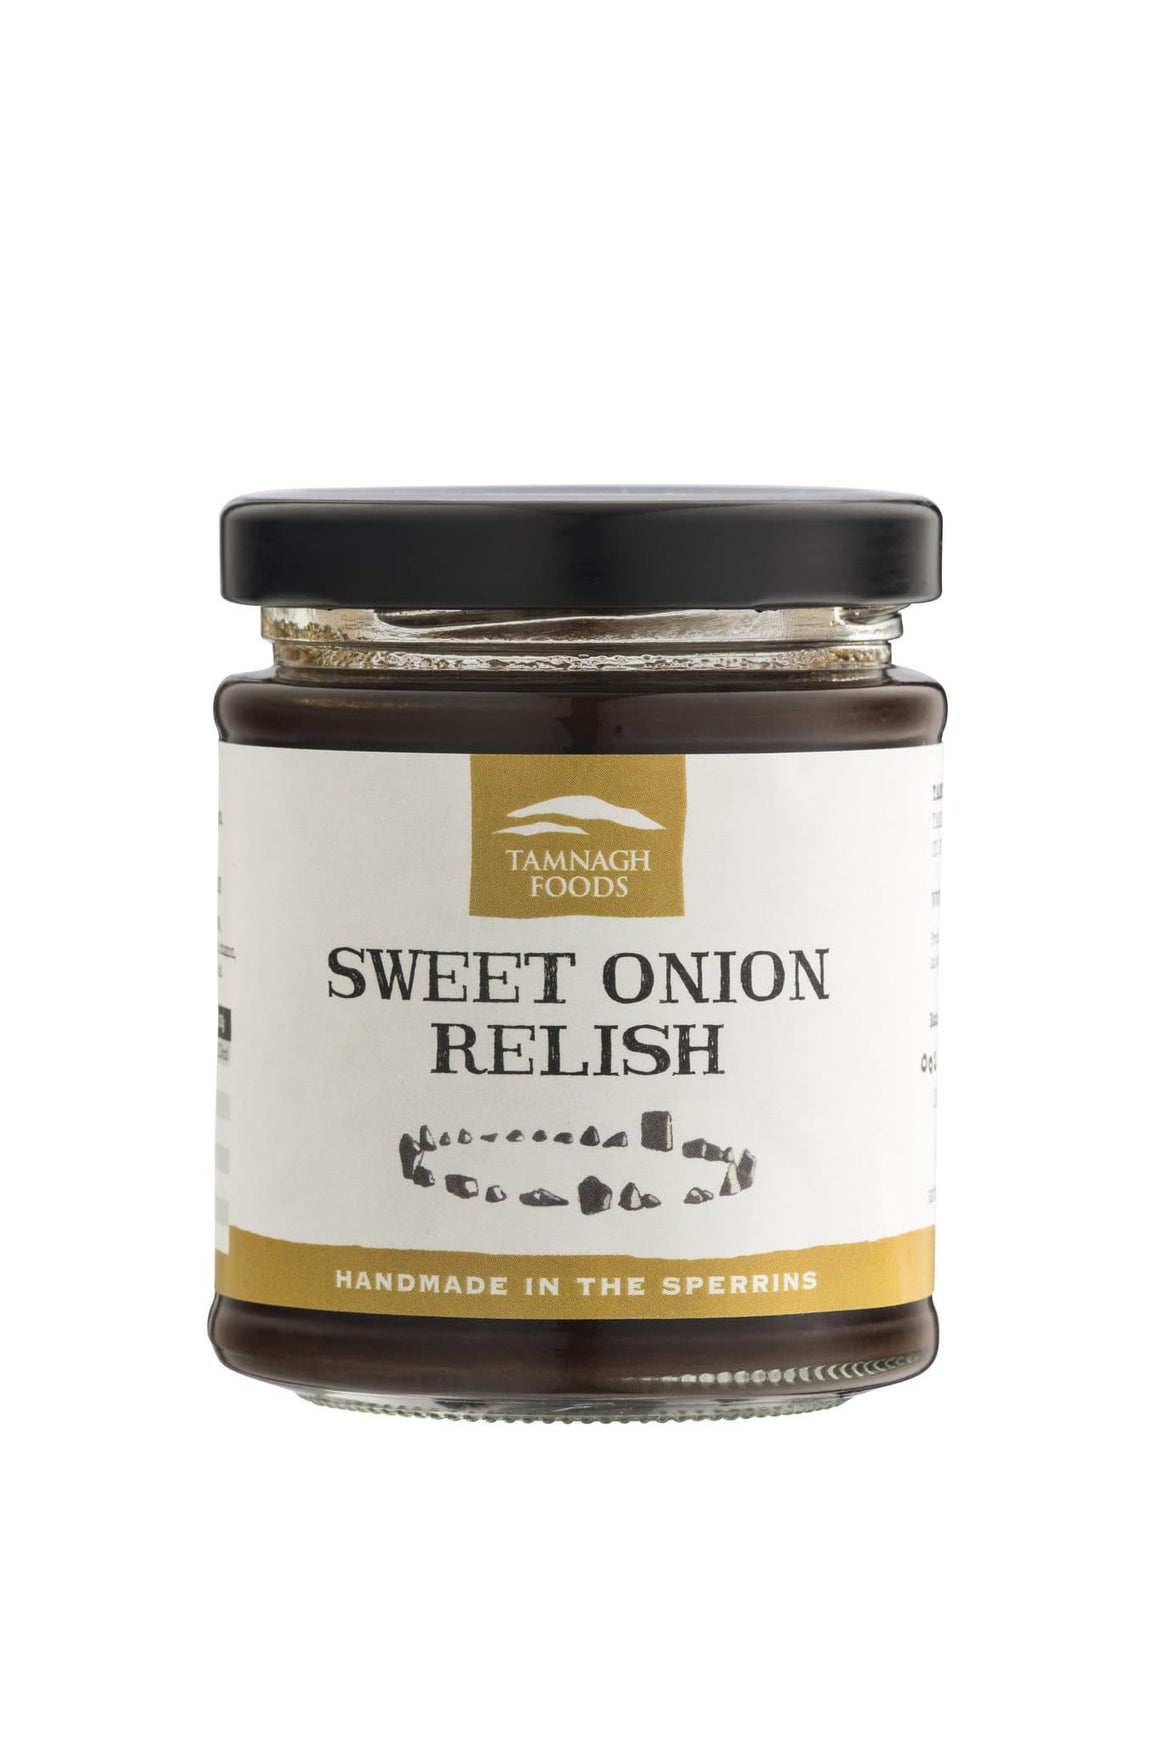 Tamnagh Foods Sweet Onion Relish 230G - SoulBia